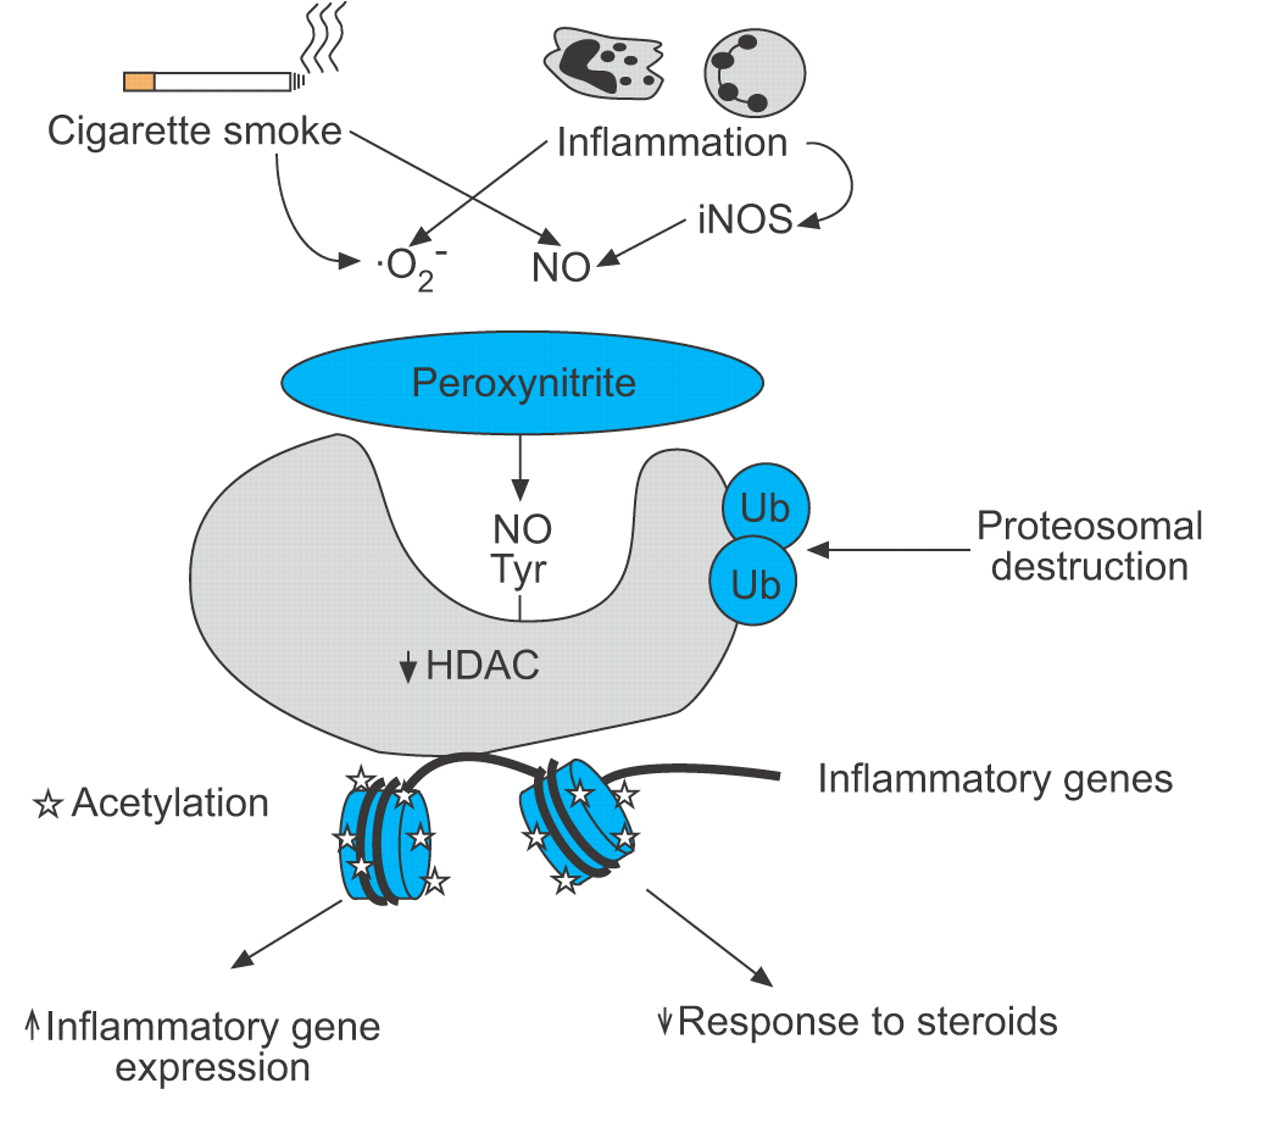 Histone acetylation and deacetylation: importance in inflammatory